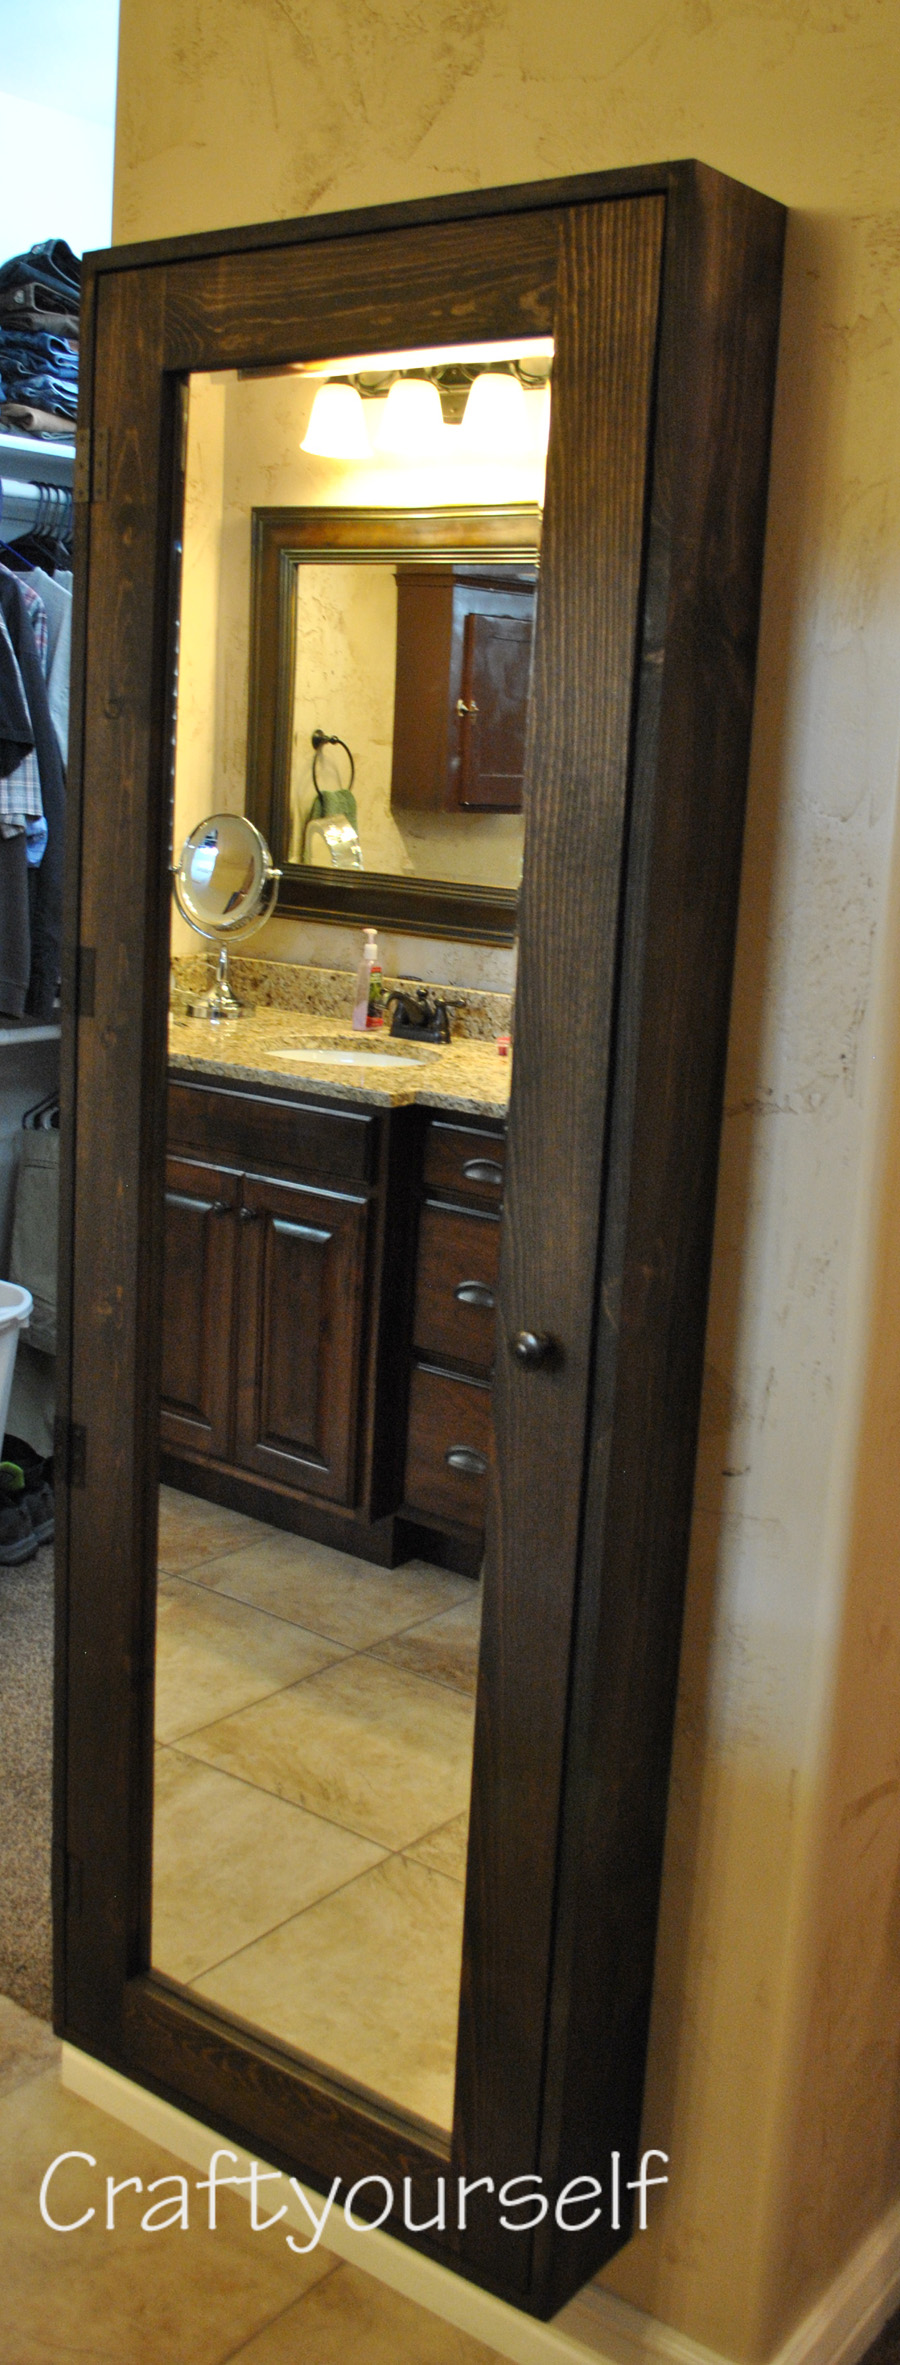 1. Bathroom Cabinet with Mirror via SIMPHOME.COM